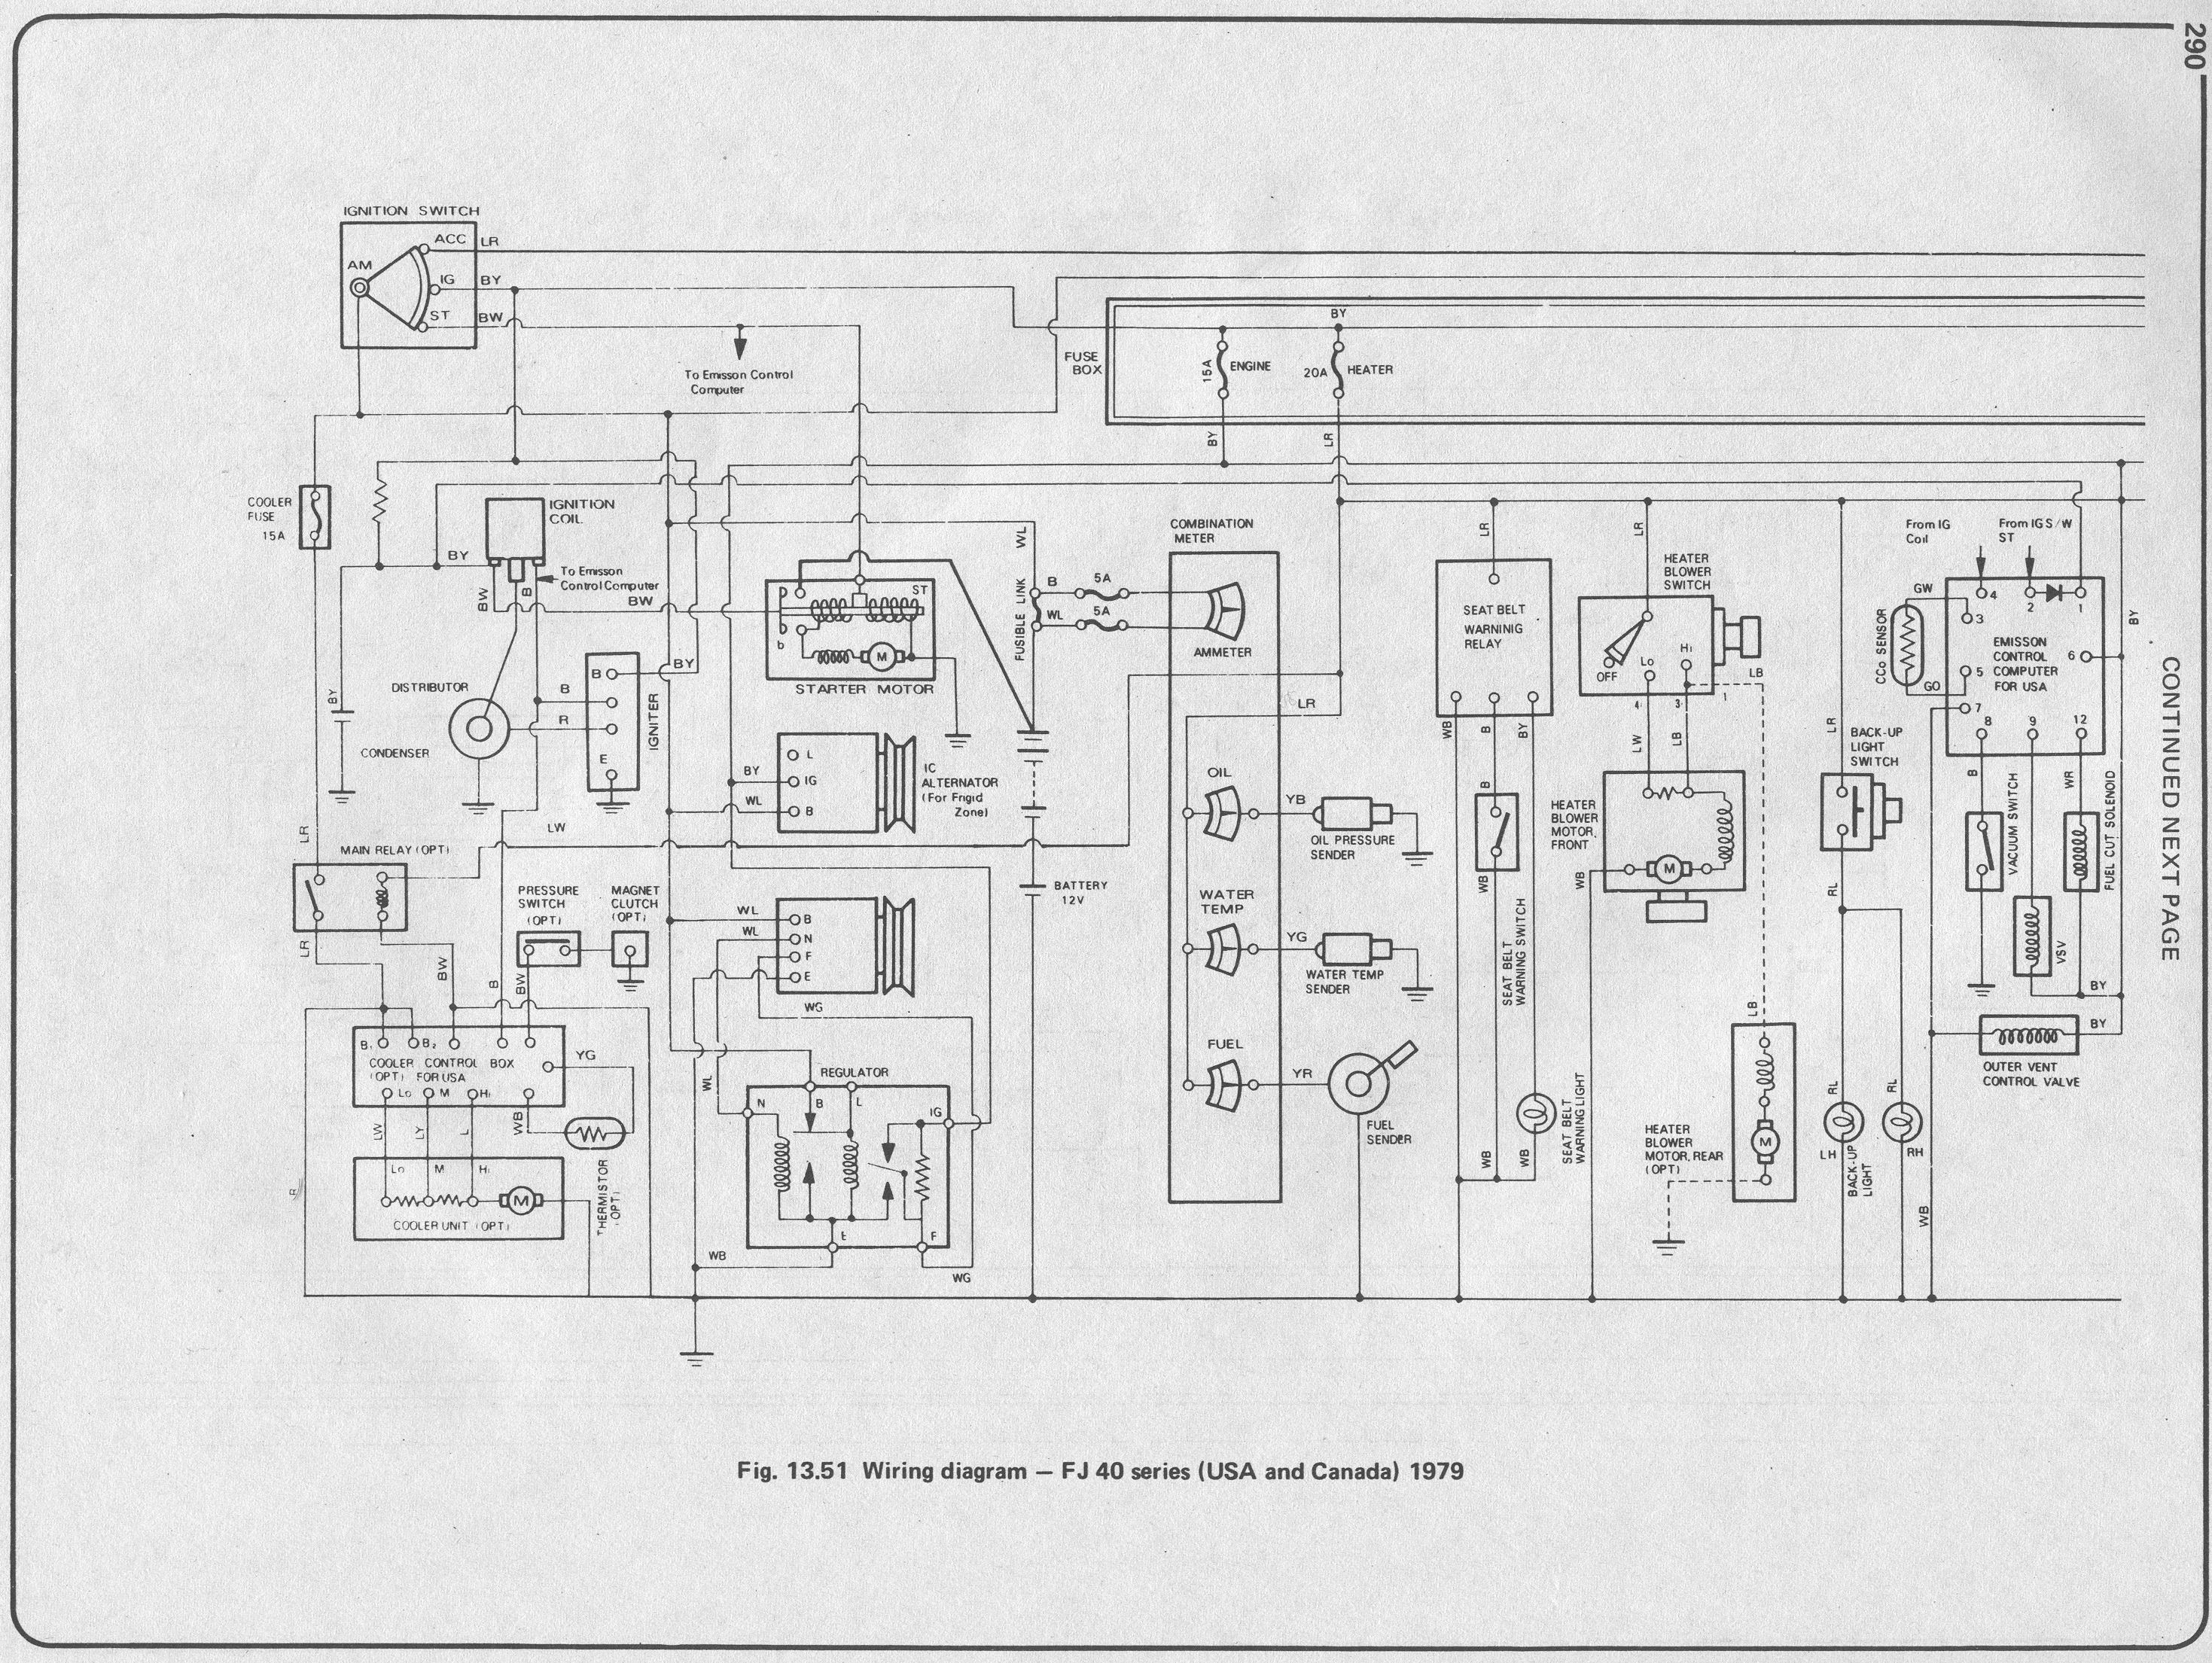 Electrical Schematic For 78 Bj40 Lhd